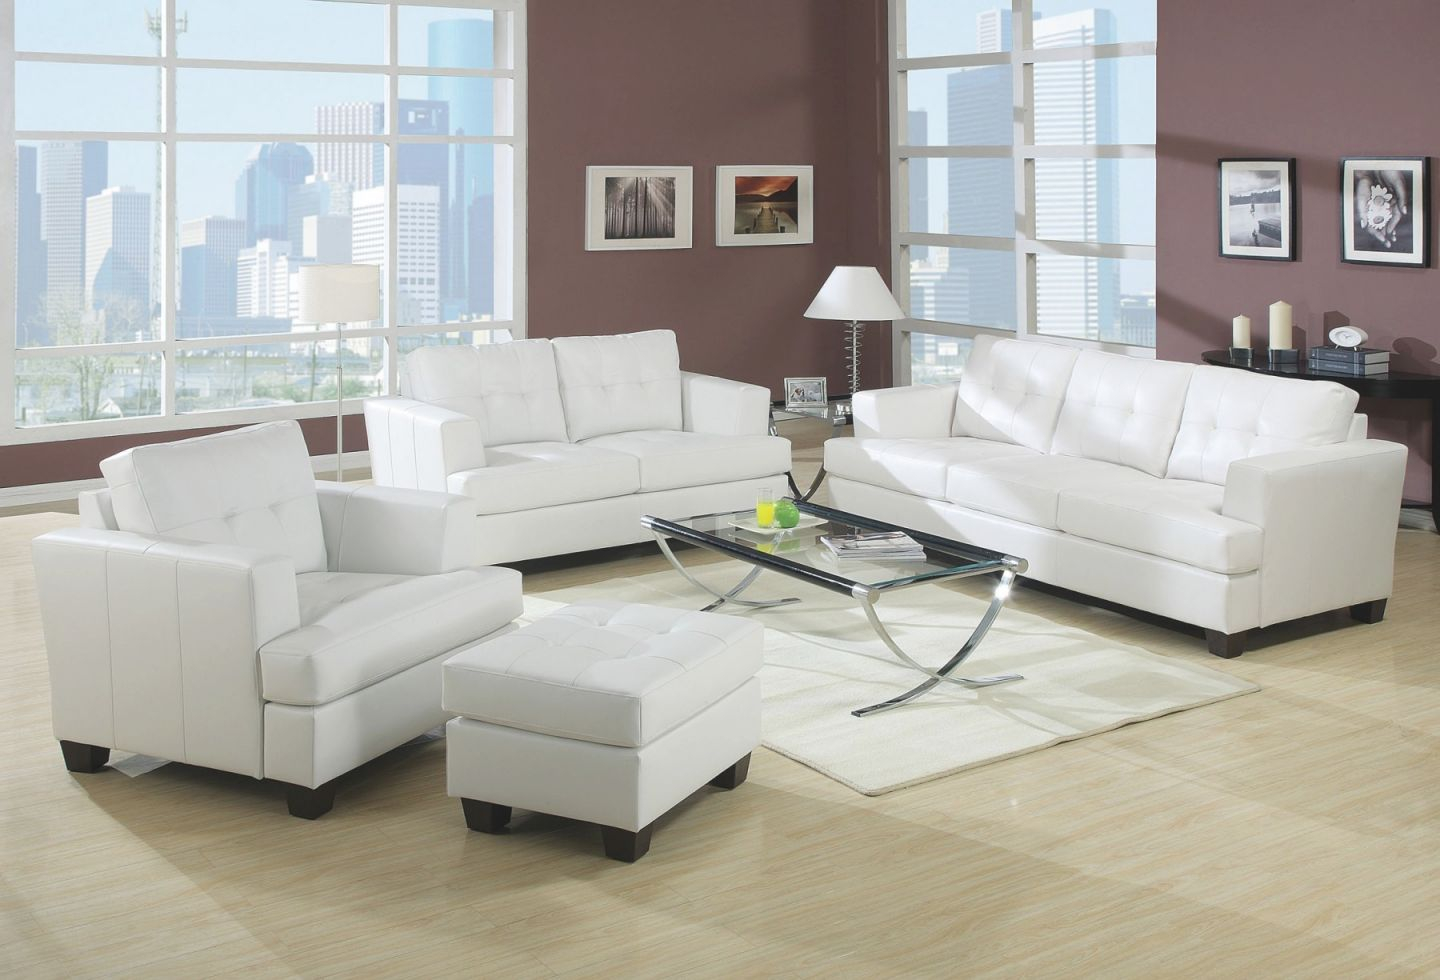 Acme Platinum 2Pc Living Room Furniture White Bonded Leather Sofa & Loveseat within Elegant White Leather Living Room Furniture